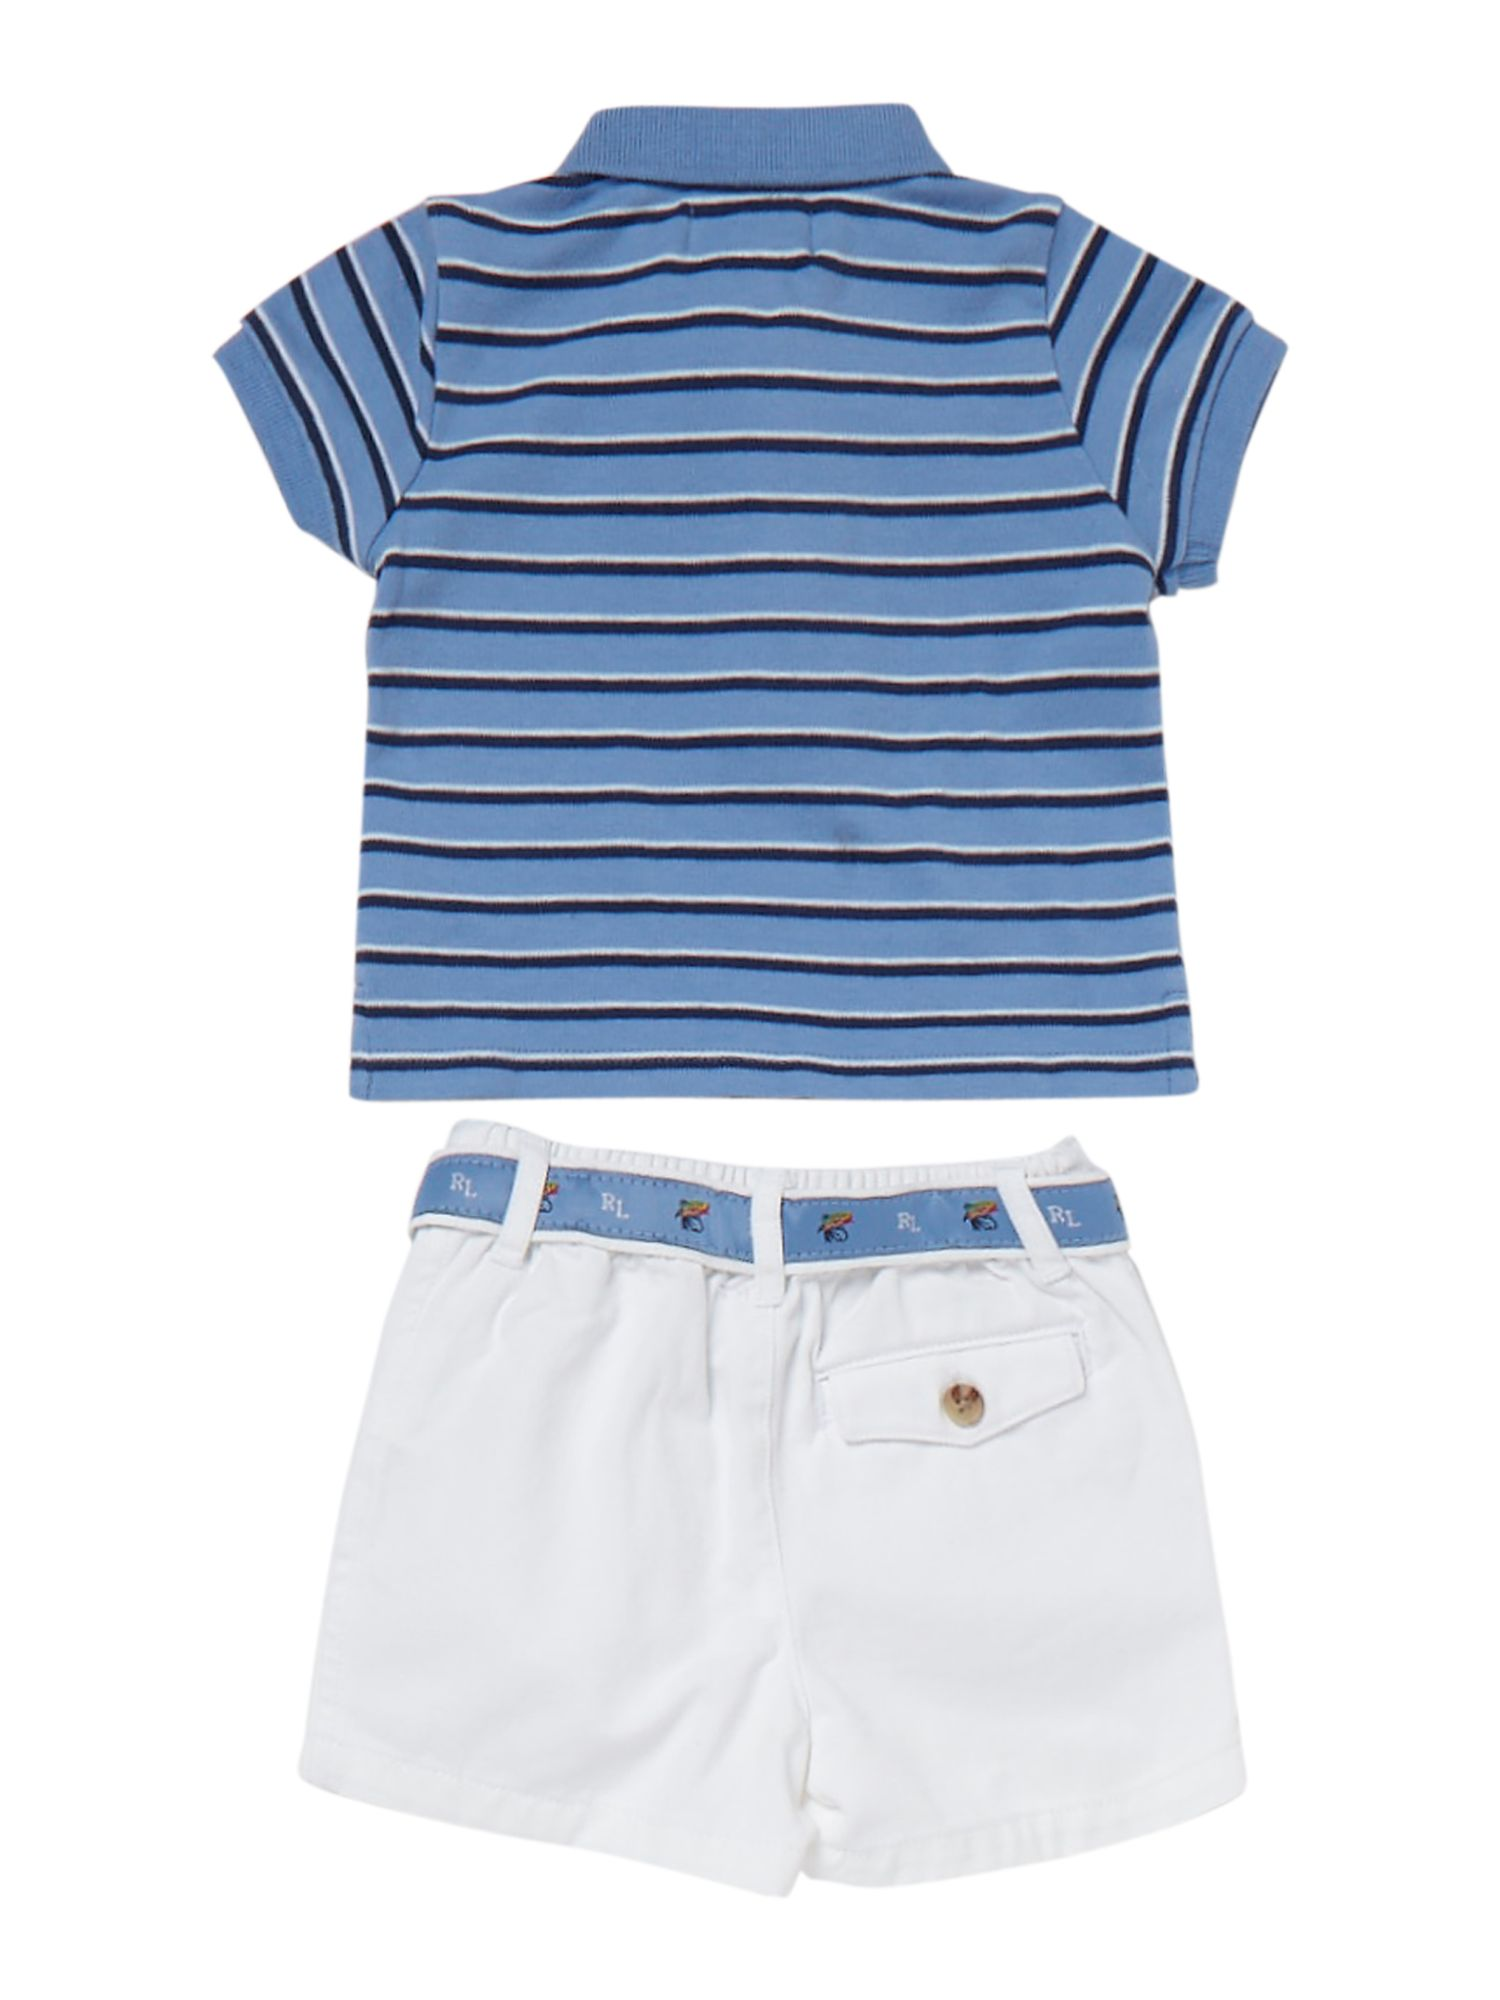 Babys striped polo and shorts set